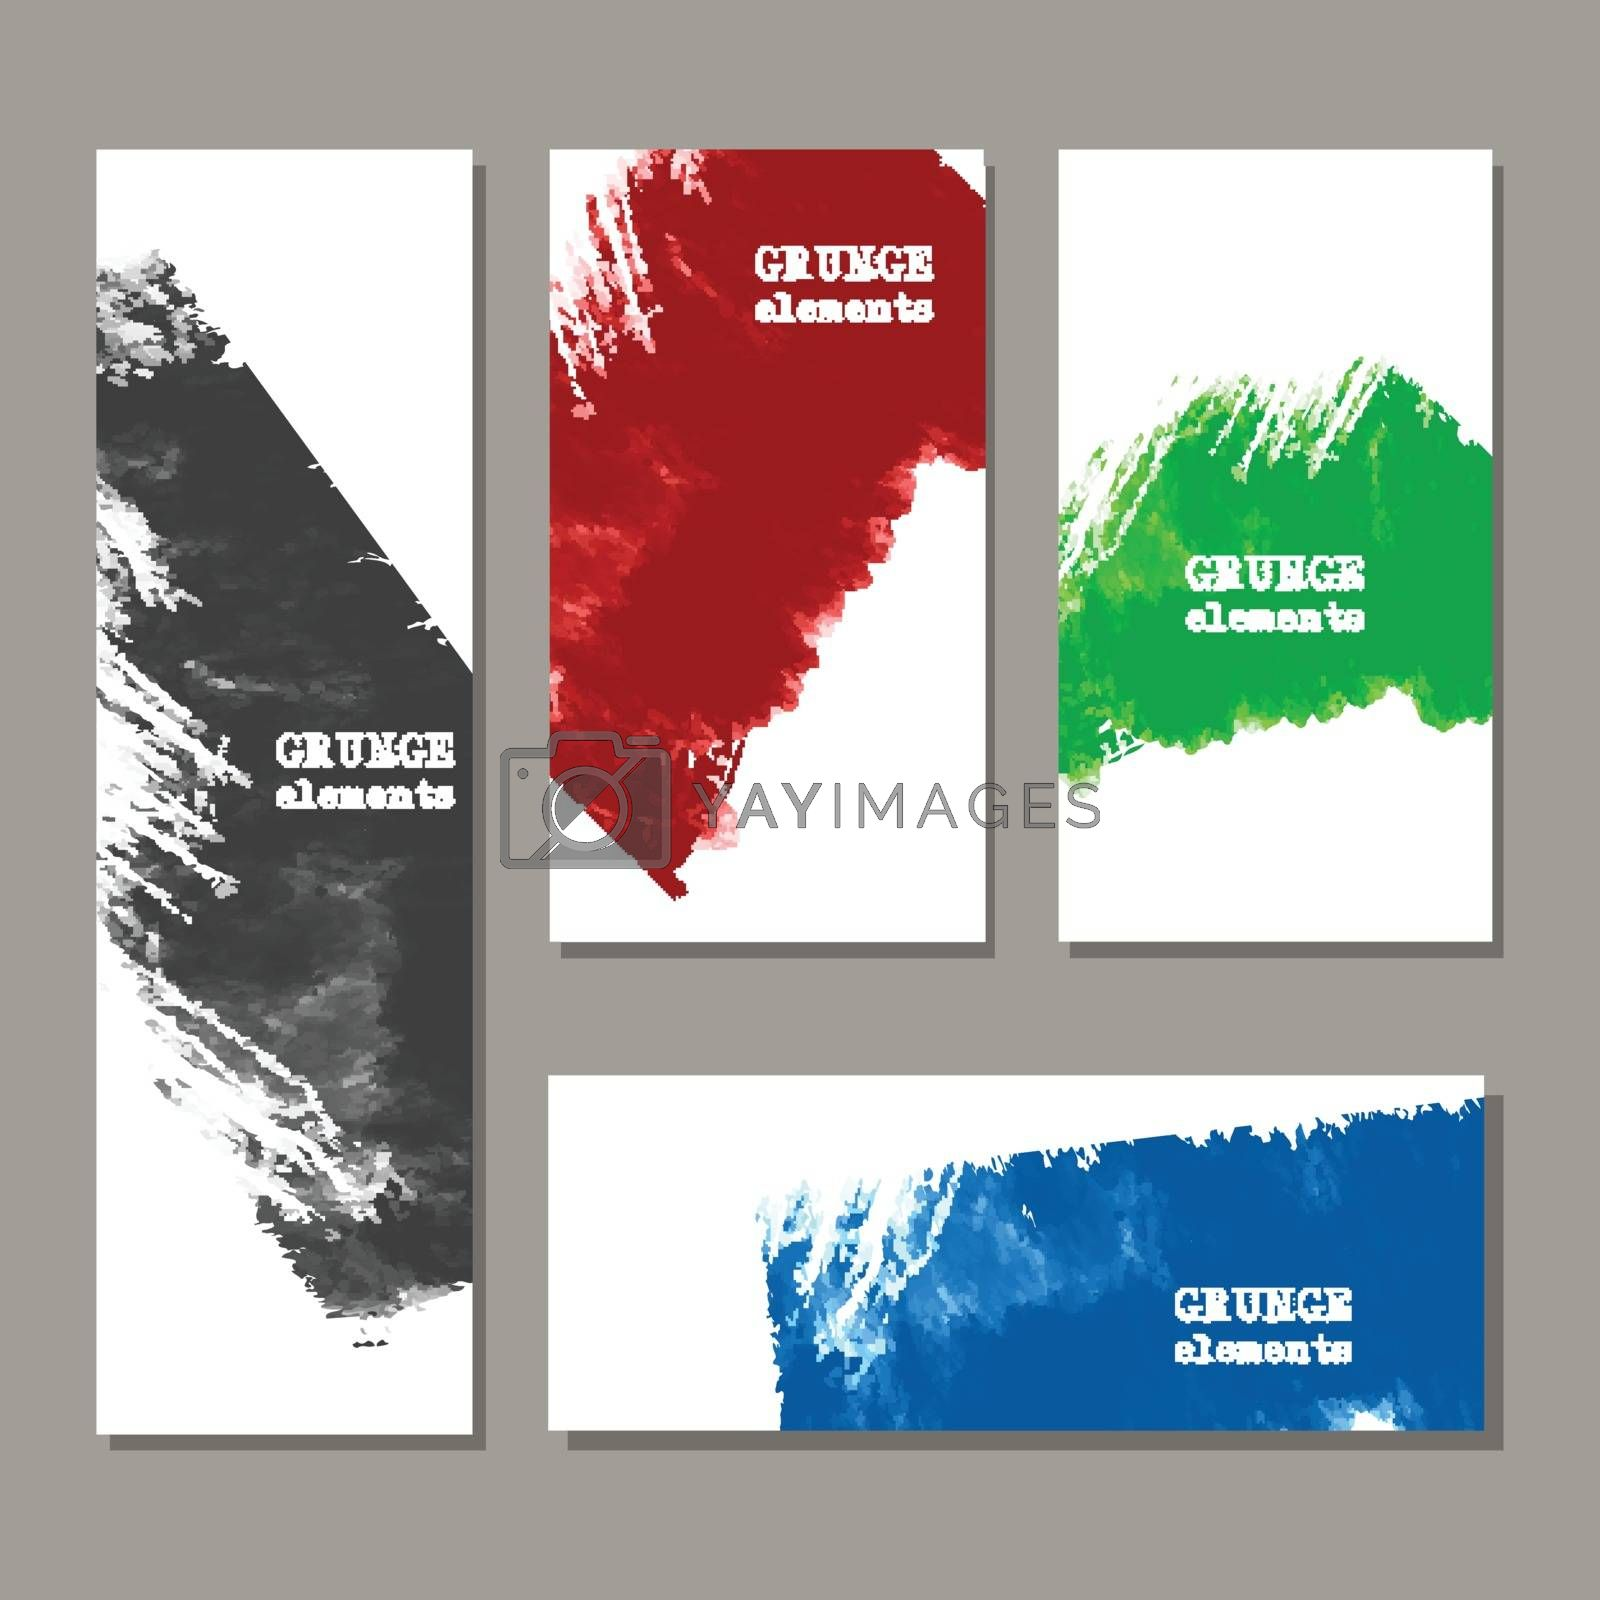 Color art brush paint template. Original grunge art brush paint texture background acrylic stroke poster over frame vector illustration. Perfect watercolor design for headline, logo and banner.